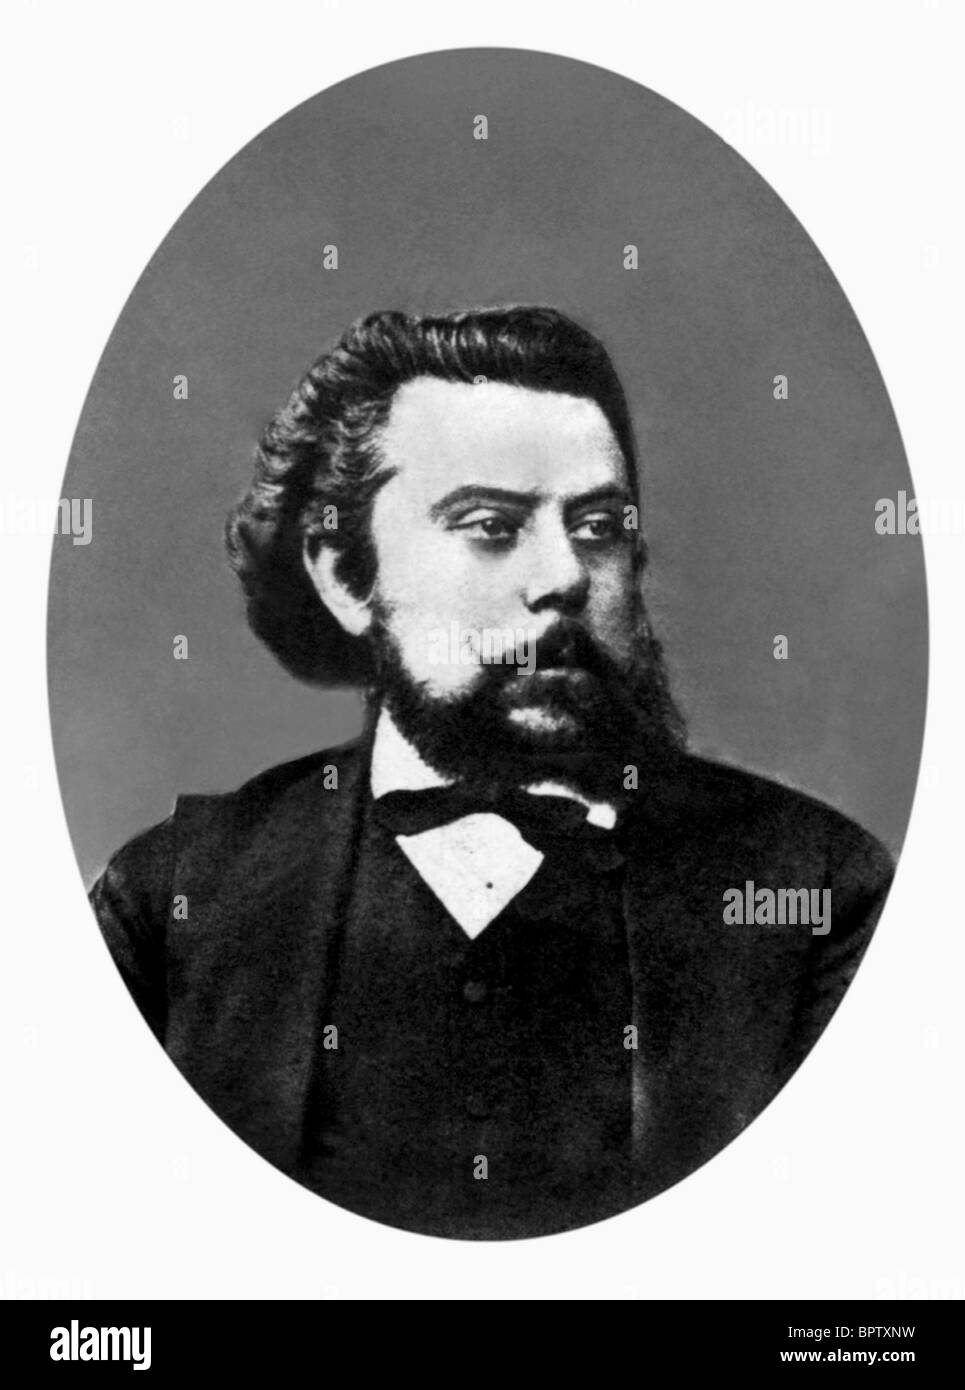 MODEST MUSSORGSKY MUSIC COMPOSER (1878) - Stock Image